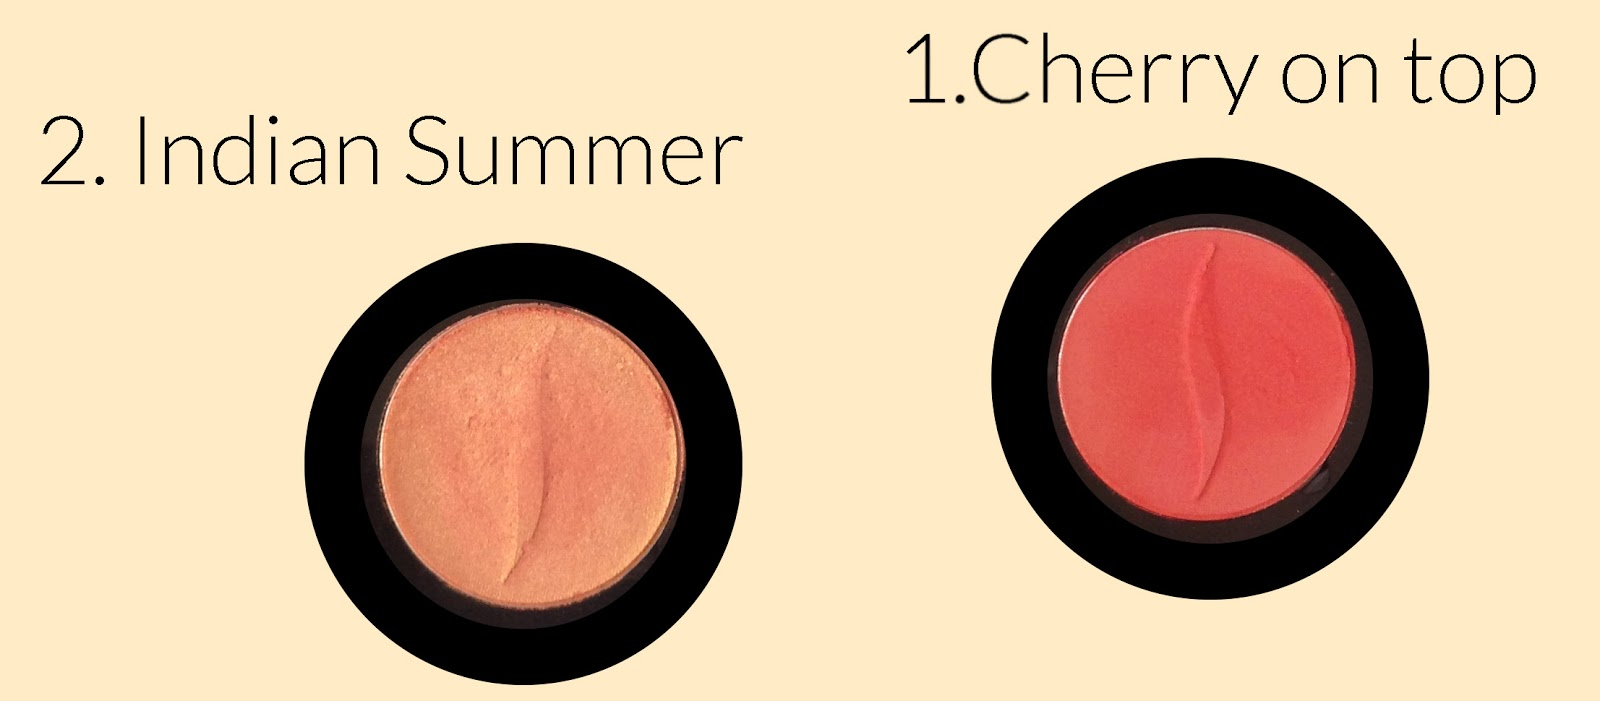 indian summer, cherry on top, eye shadow, beauty, sephora, summer